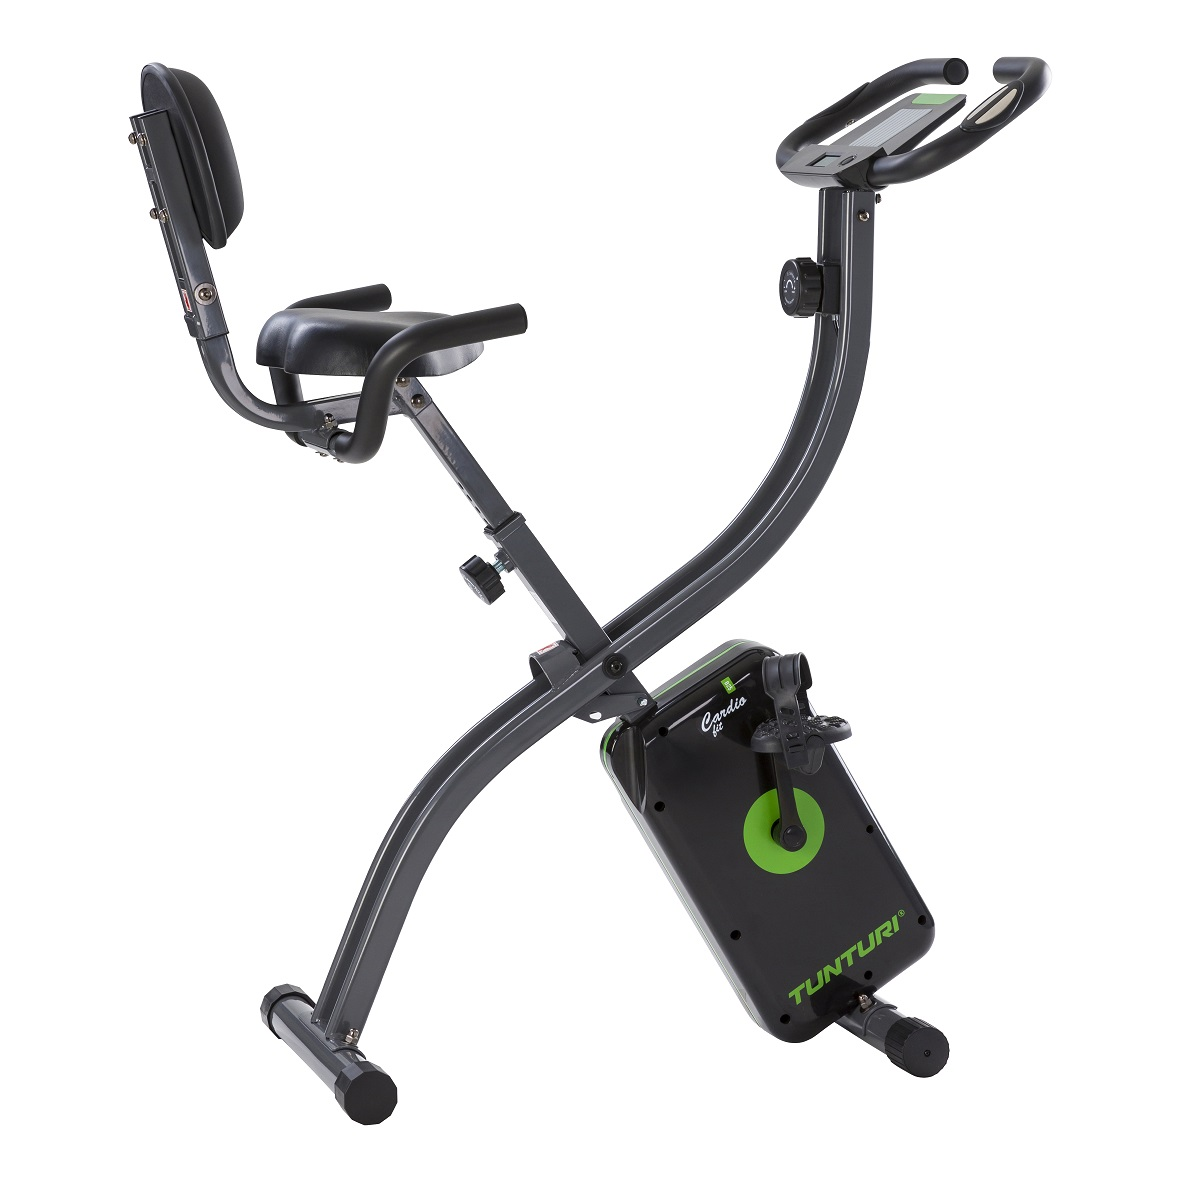 Tunturifitnessonline  - Tunturi Cardio Fit B25 X - Bike Folding Bike